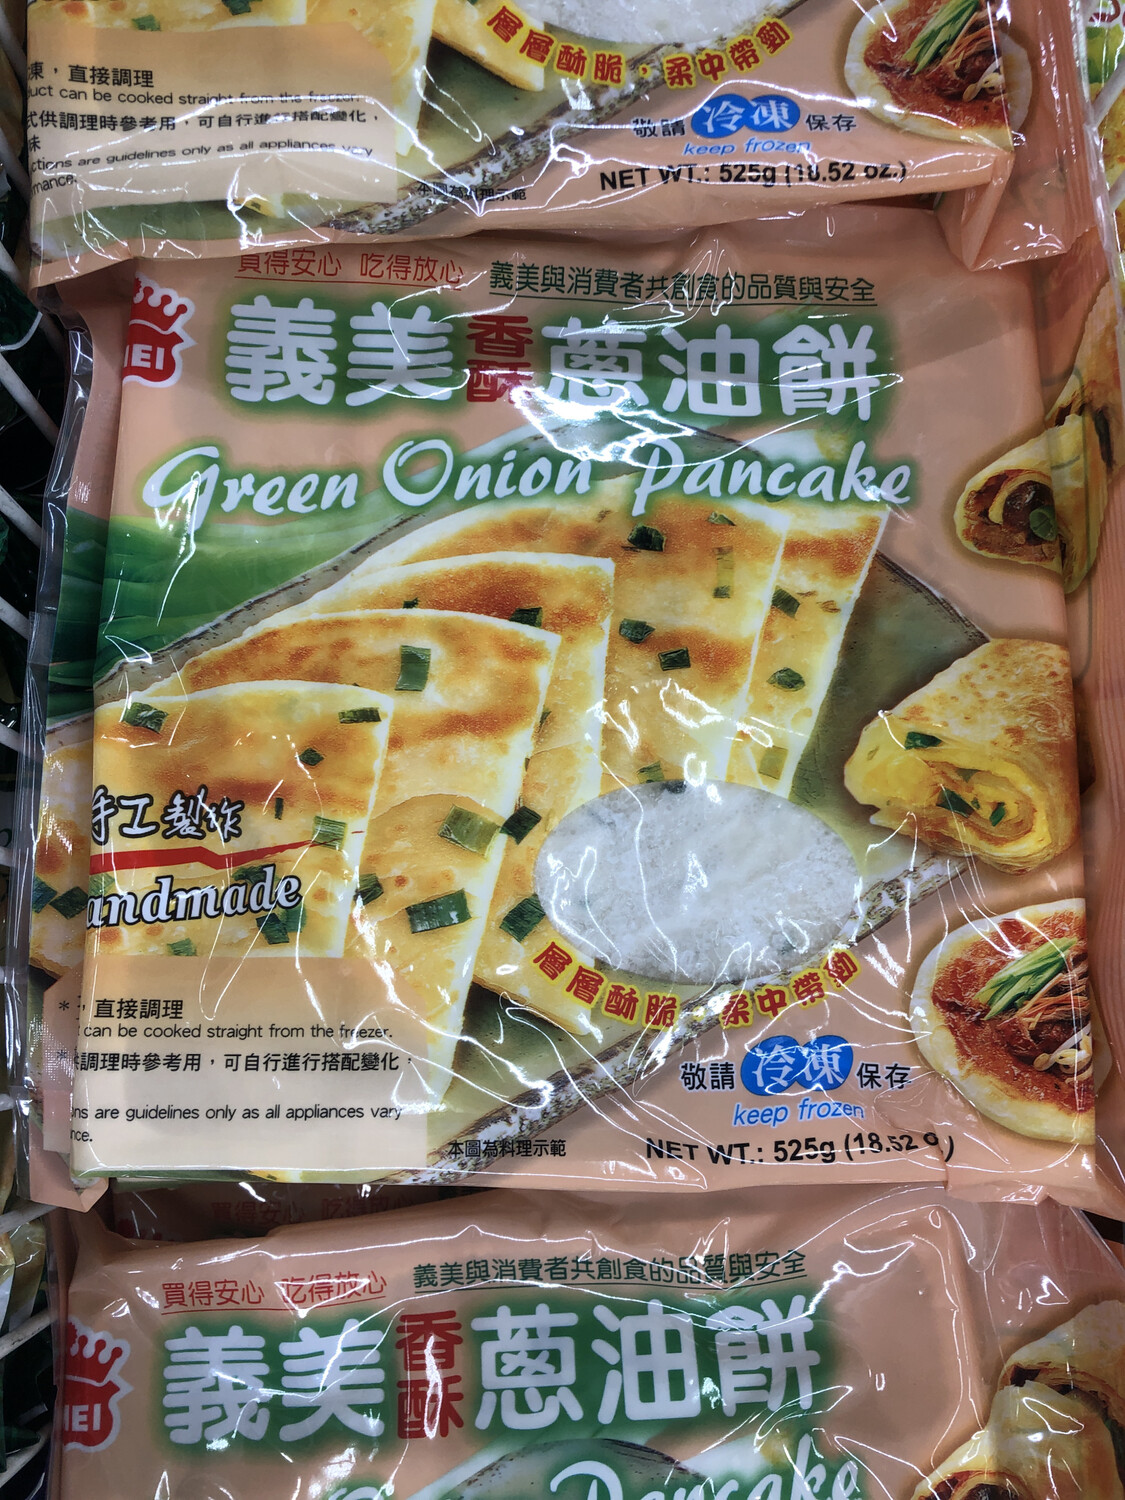 【RBF】Green Onion Pancake 义美香酥葱油饼, 525 gm/ea